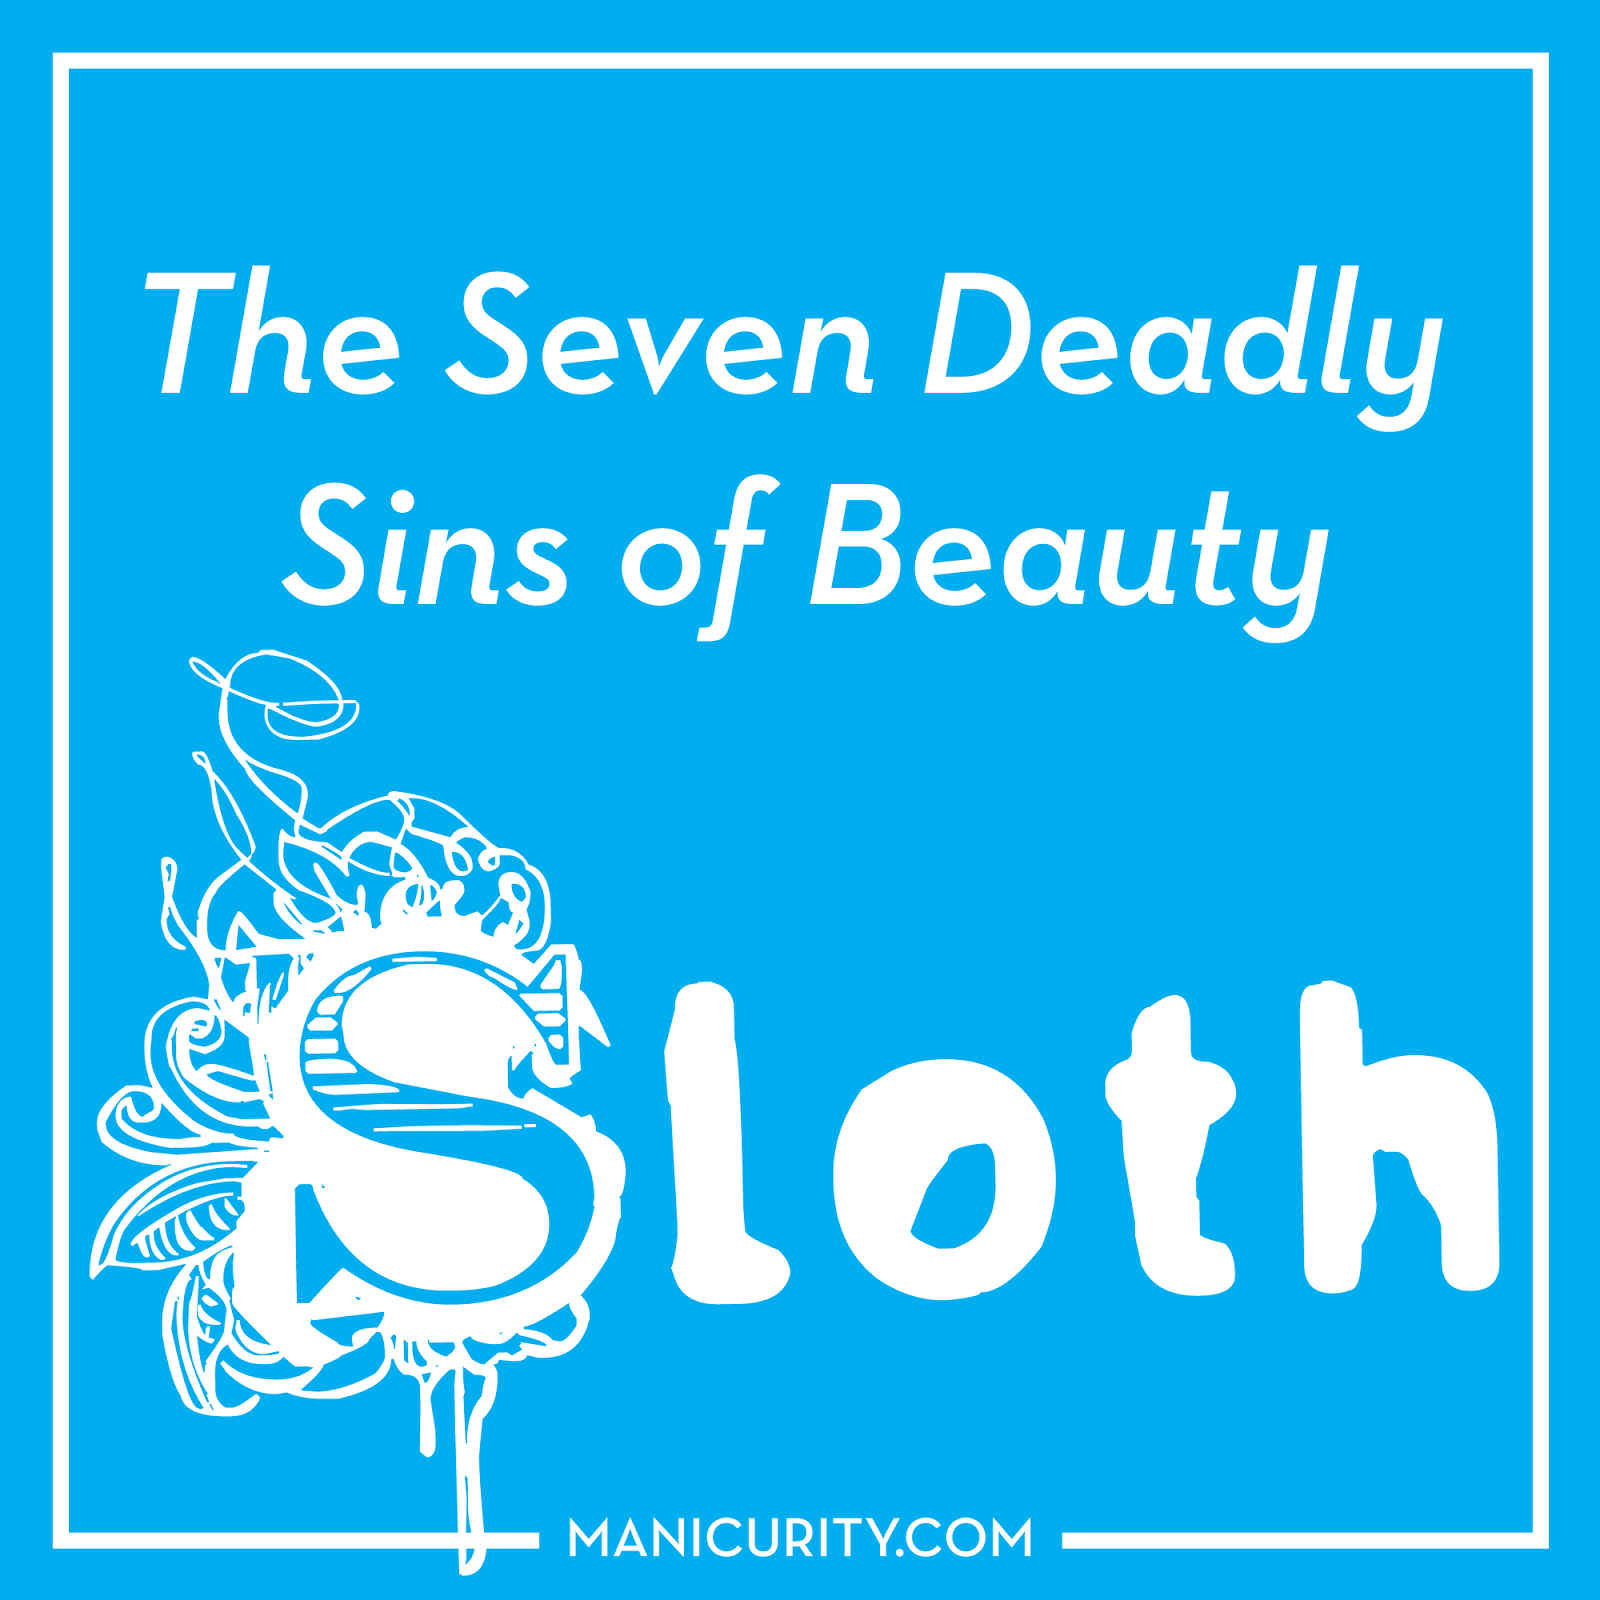 The Seven Deadly Sins of Beauty: Sloth - what product are you too lazy to apply? what nail art technique are you too lazy to do? | Manicurity.com